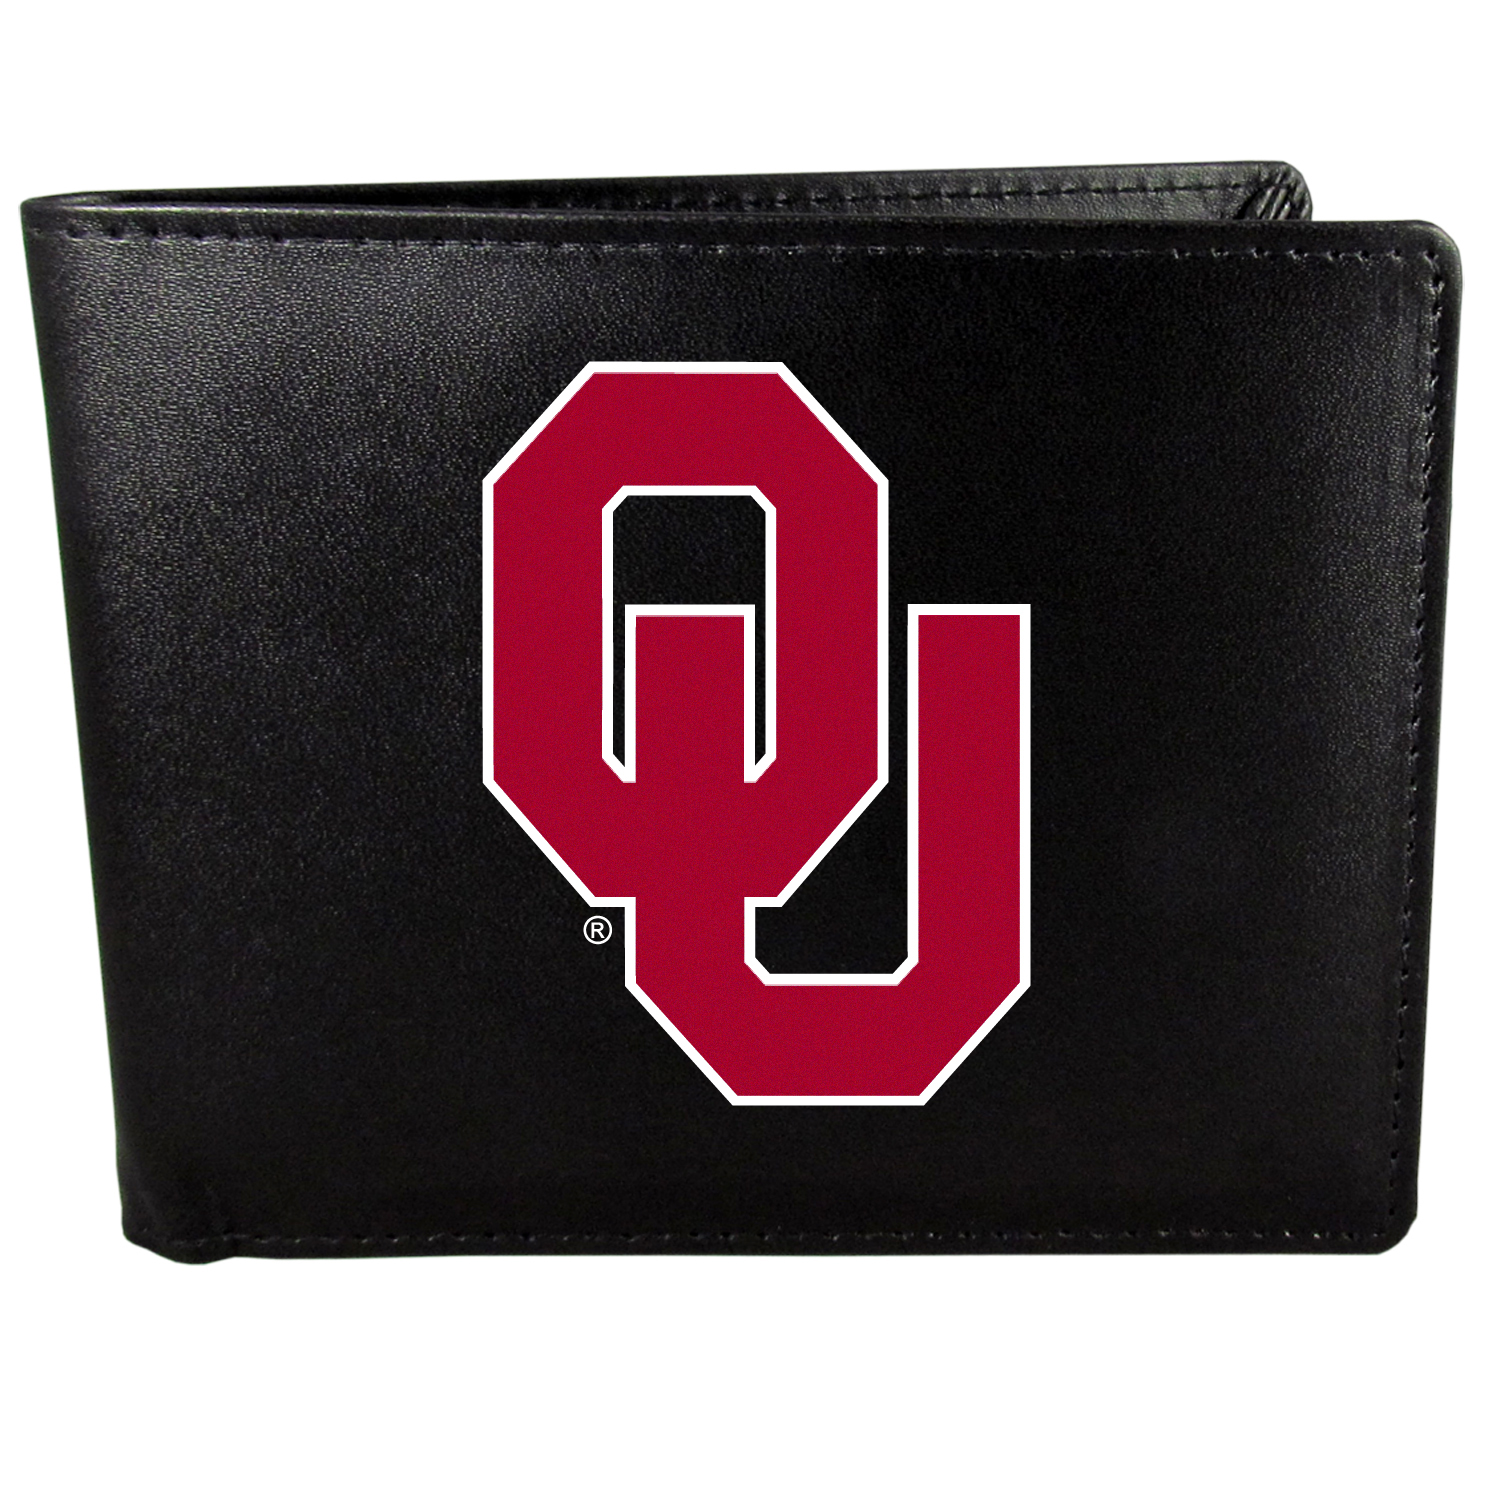 Oklahoma Sooners Bi-fold Wallet Large Logo - Sports fans do not have to sacrifice style with this classic bi-fold wallet that sports the Oklahoma Sooners extra large logo. This men's fashion accessory has a leather grain look and expert craftmanship for a quality wallet at a great price. The wallet features inner credit card slots, windowed ID slot and a large billfold pocket. The front of the wallet features a printed team logo.